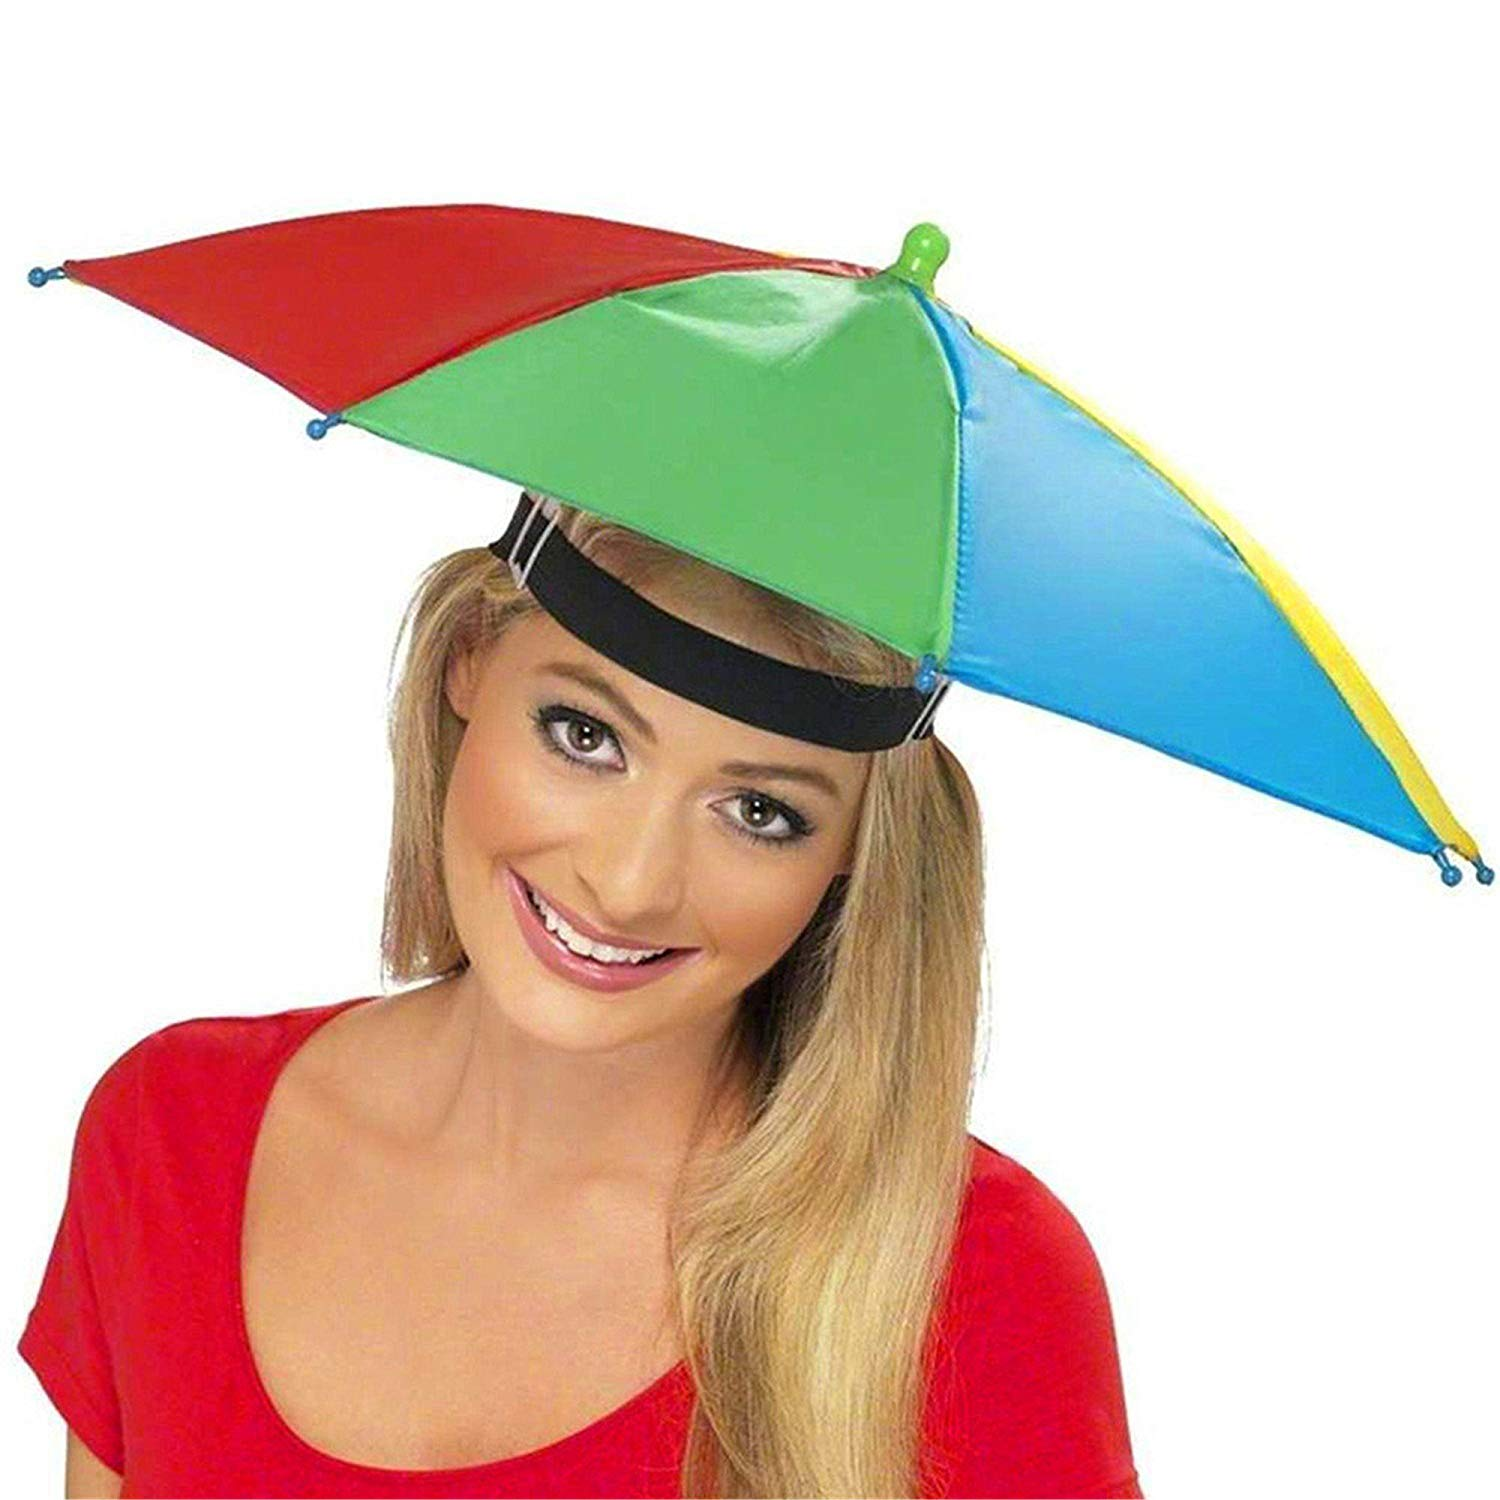 e5a5f7e4dd0 Get Quotations · SFE-Umbrella Cap